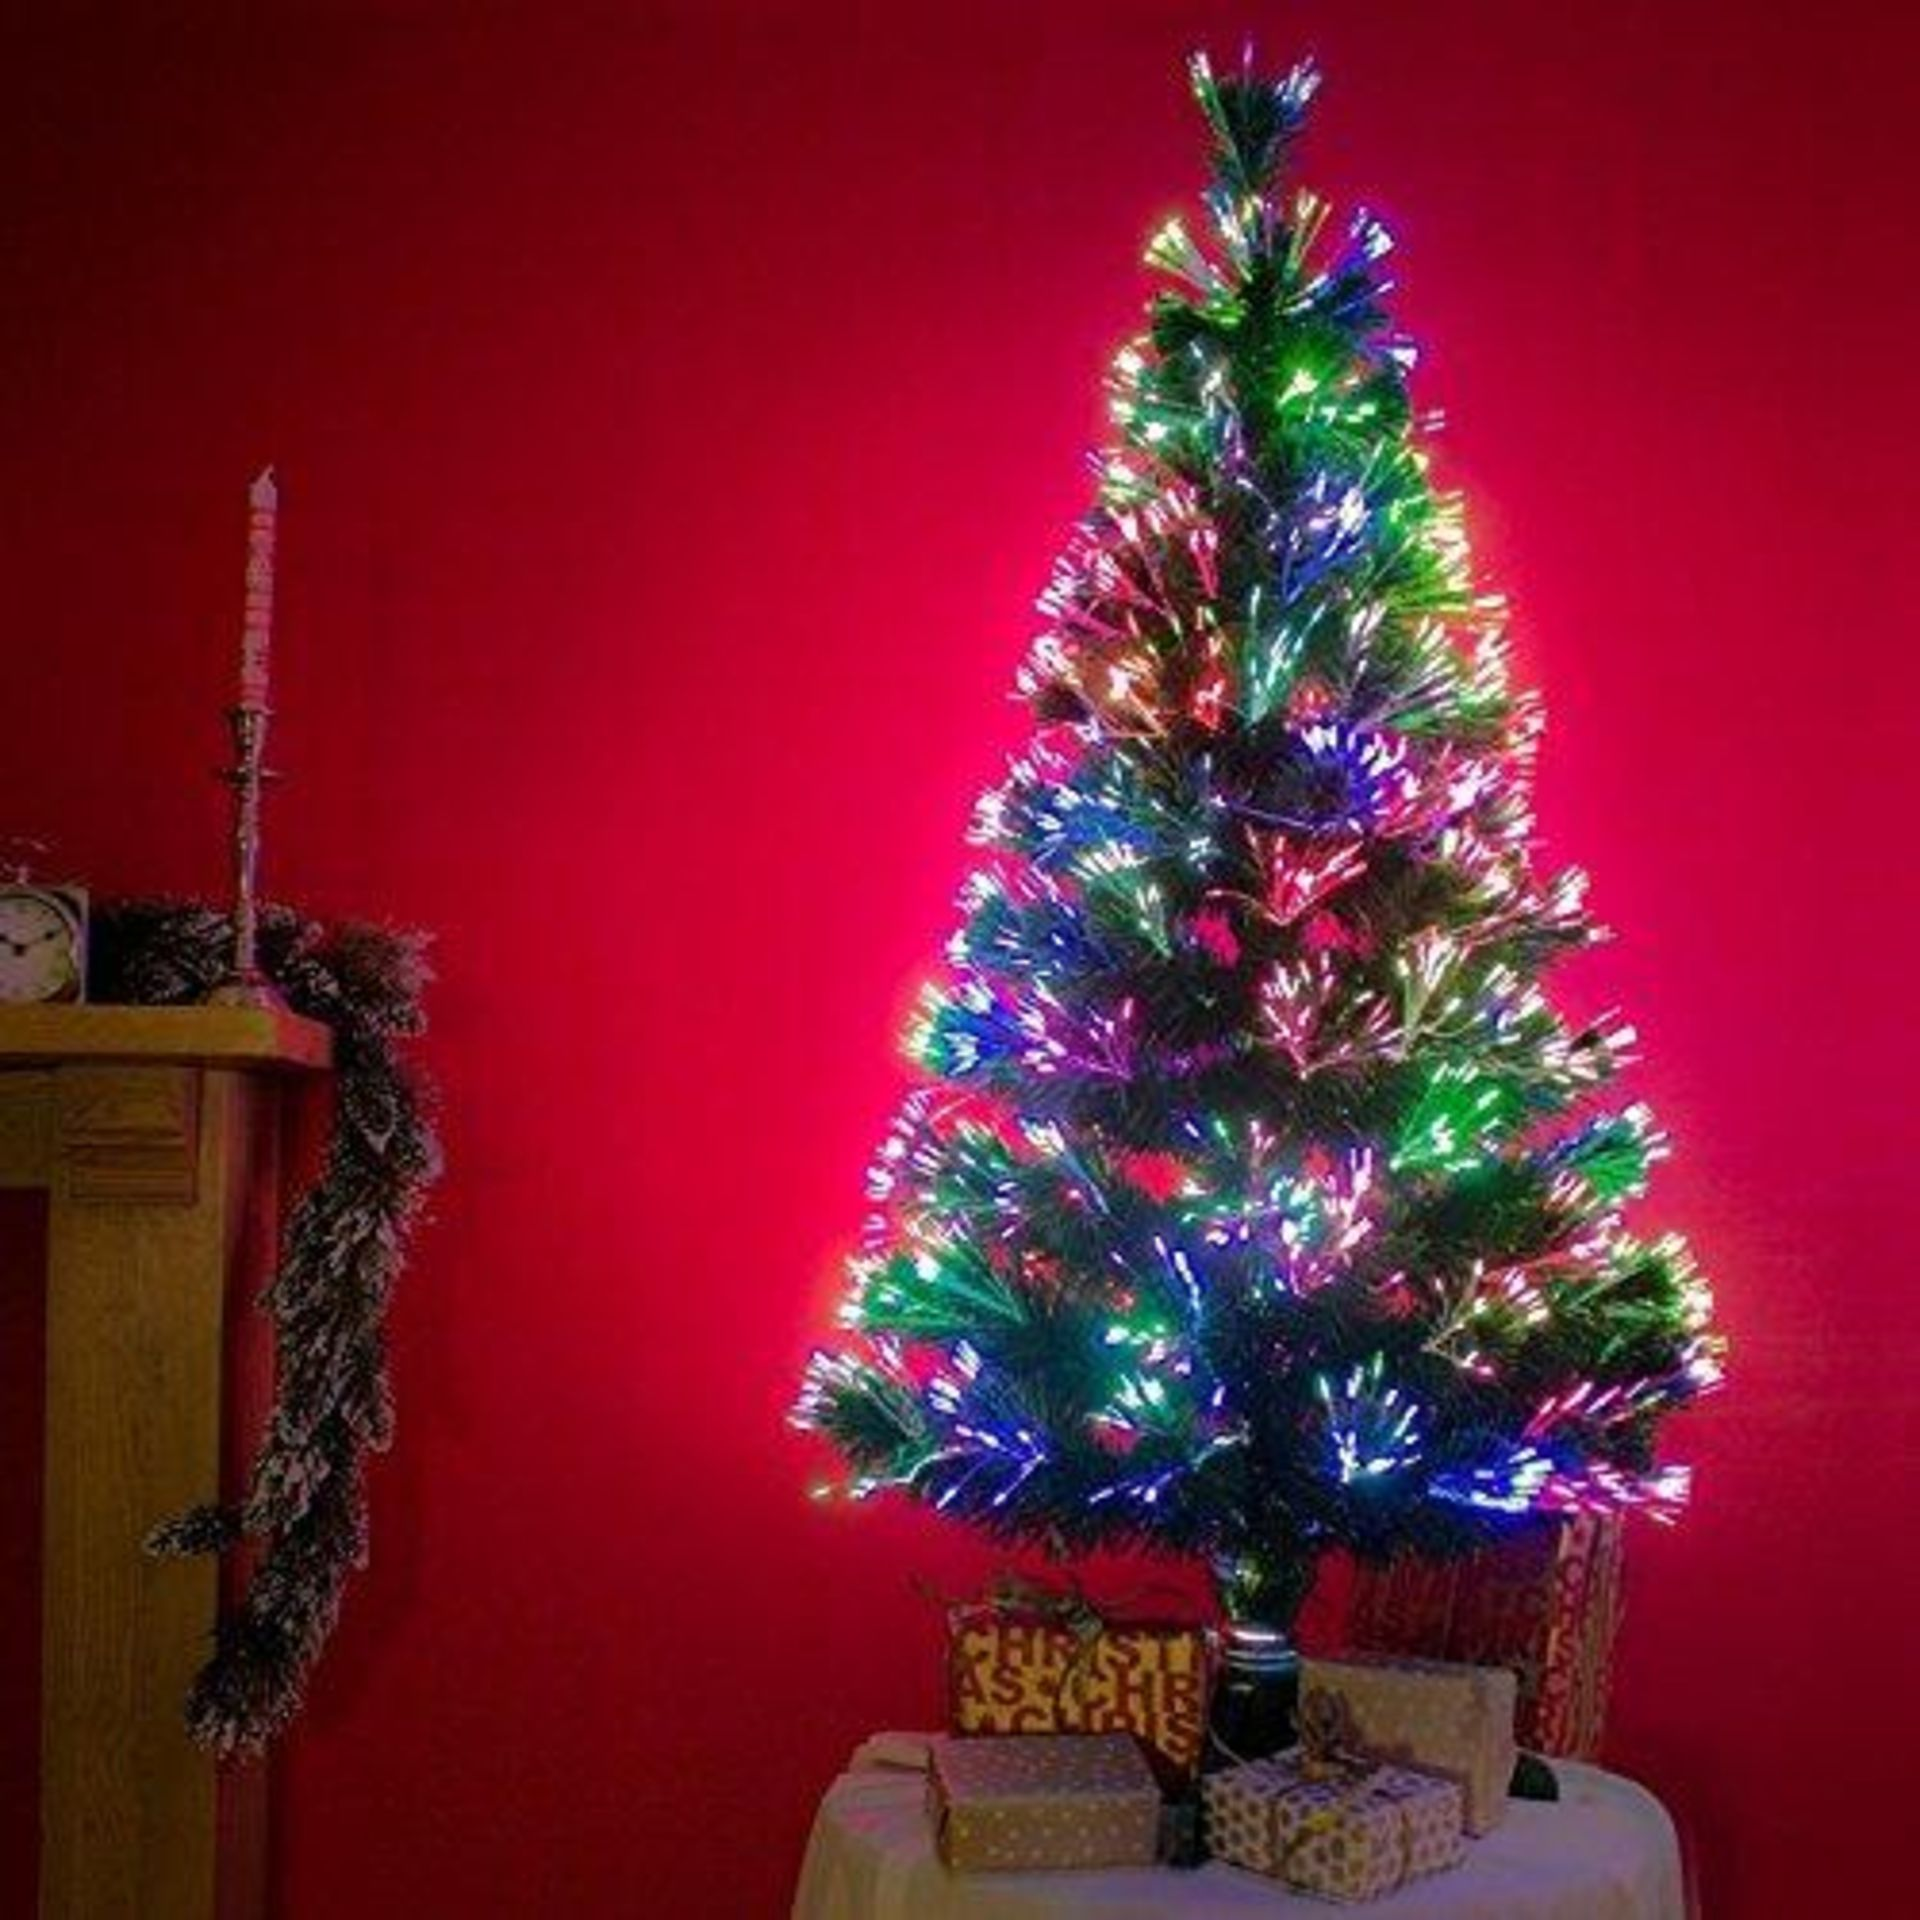 Lot 18002 - V Brand New 90CM Luxury Fibre Optic Christmas Tree With LEDs